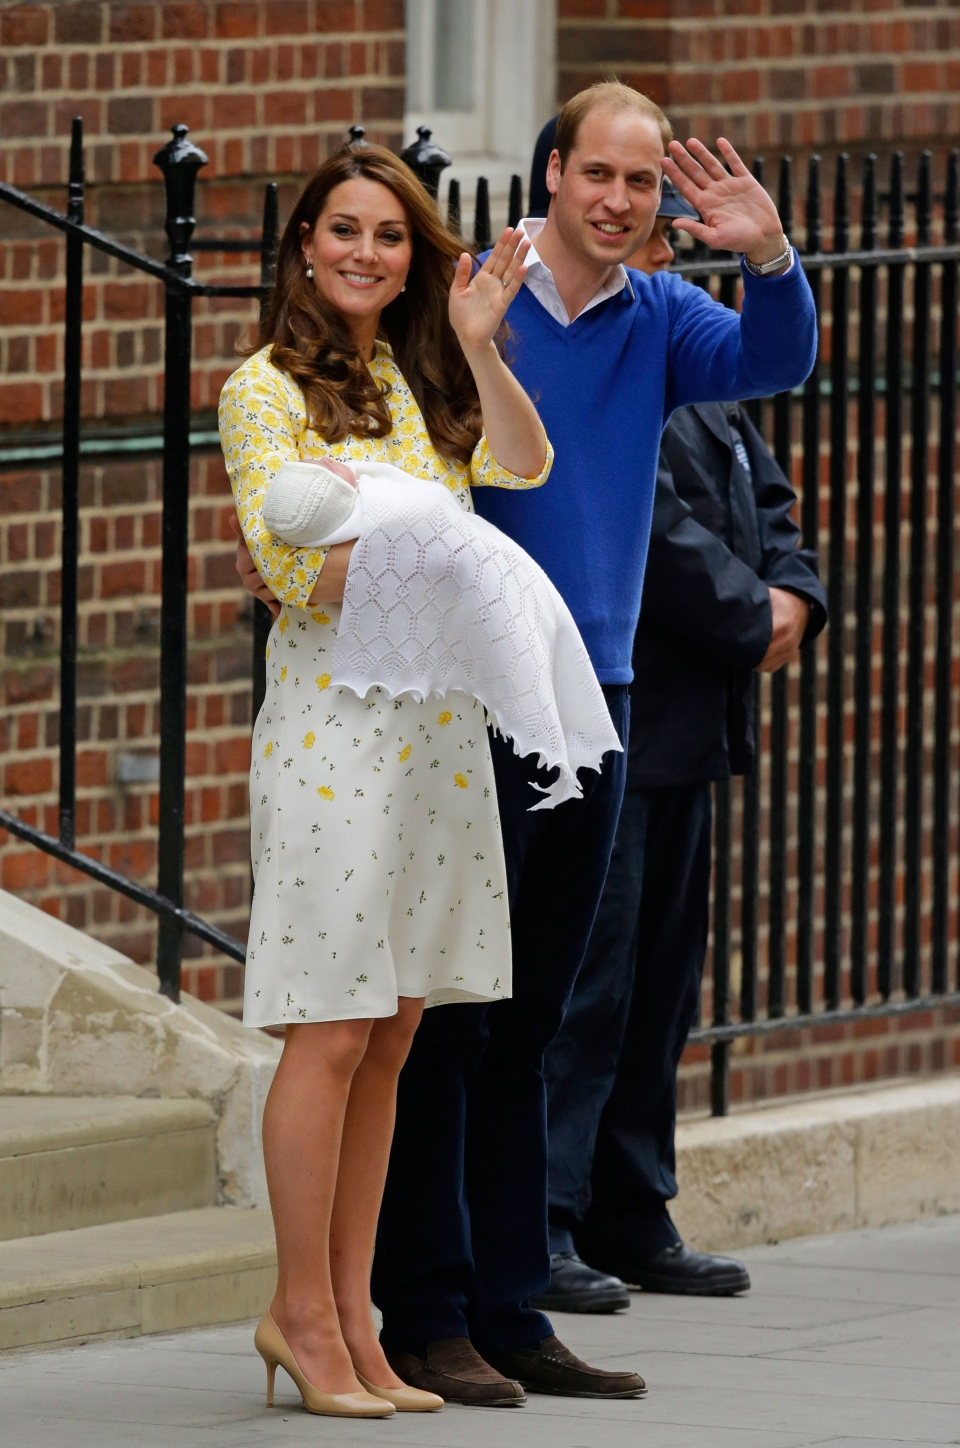 Prince William and Kate, Duchess of Cambridge and their newborn baby princess, pose for the media as they leave St. Mary's Hospital's exclusive Lindo Wing, London, Saturday, May 2, 2015. (AP / Matt Dunham)